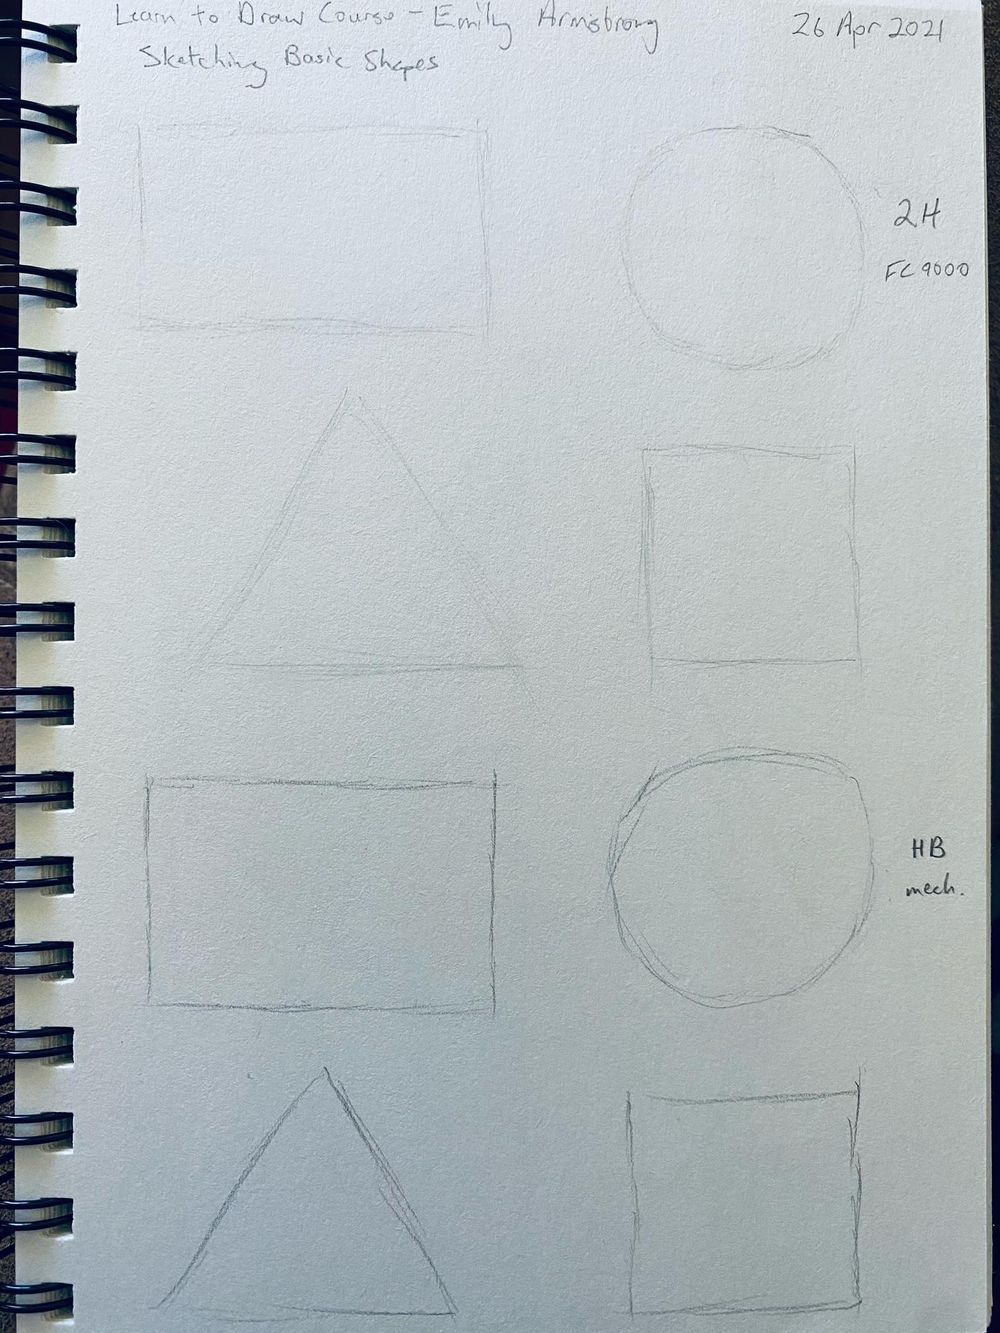 Learn to Draw: Complete Course - Exercises - image 3 - student project